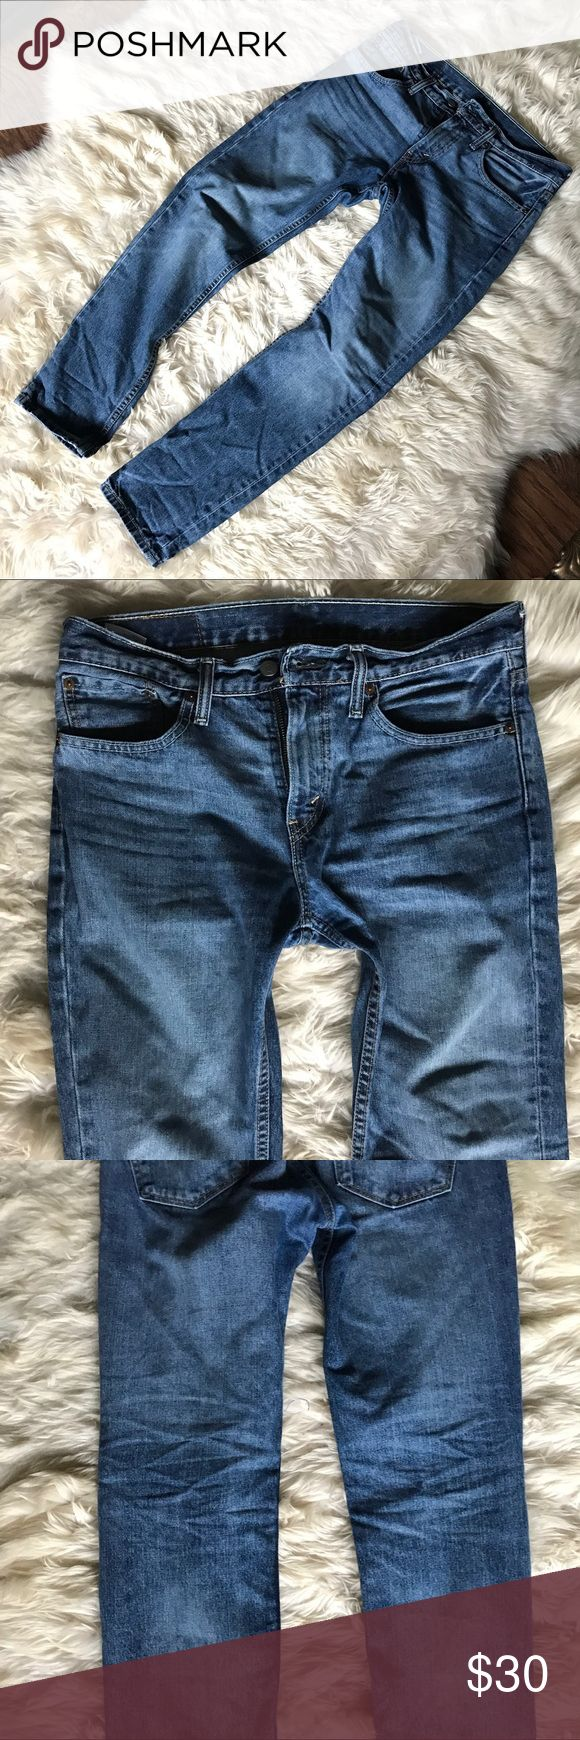 Levi's 511 Slim Fit Denim Jeans Stiff denim material. Lightly used, stylish jean with a great wash (faint dye markings behind knee and bottom near hem made to look like wrinkles) and slight distress in very small areas, all factory made. Size 31x30. Like new Levi's Jeans Slim